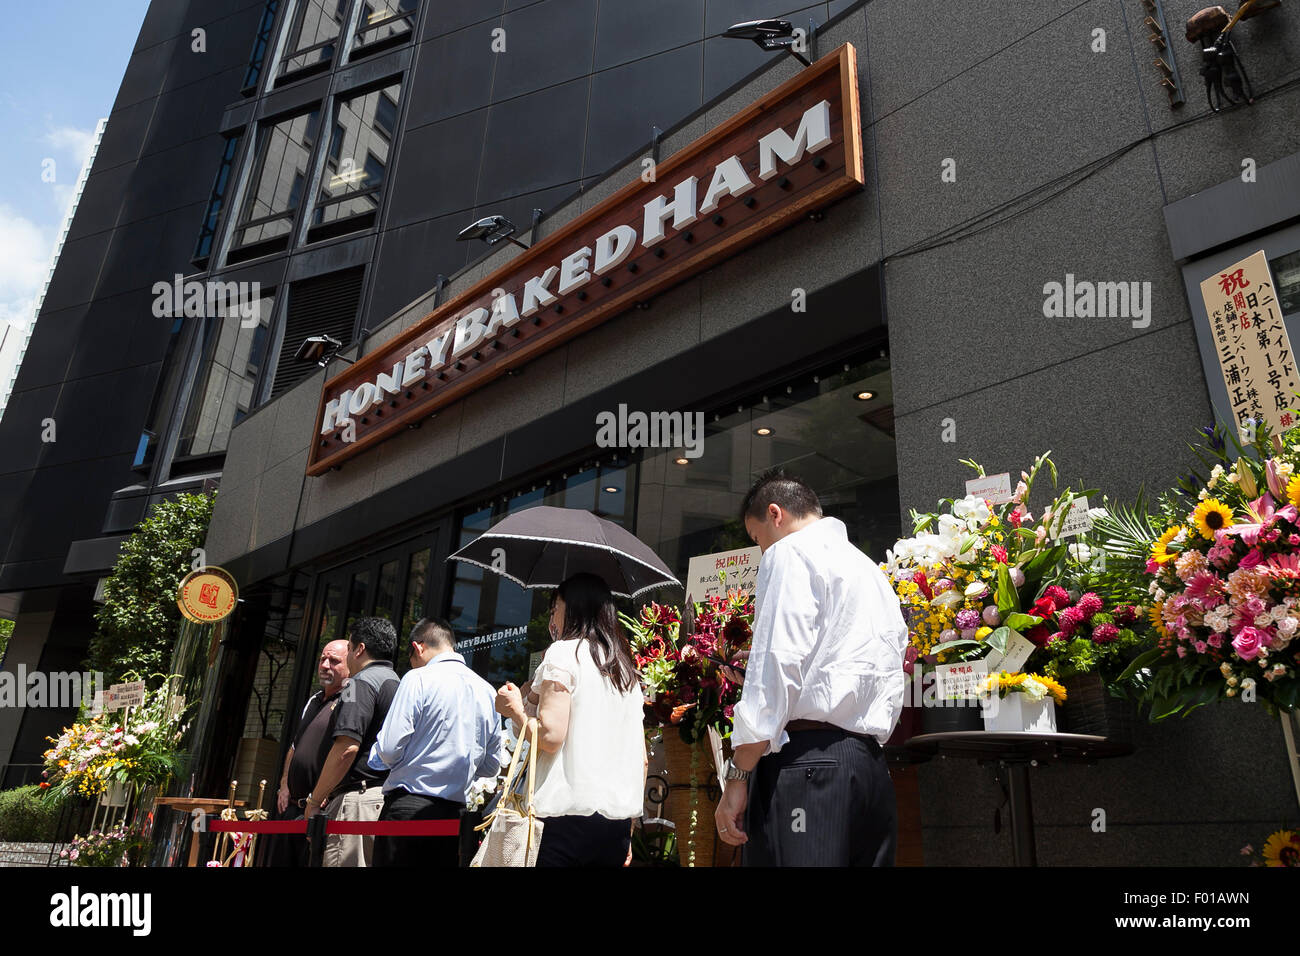 Ham company - Customers Wait Outside The New Honey Baked Ham Store In Tokyo Japan On August 6 2015 The Honey Baked Ham Company Llc In Collaboration With Toranomon Ham